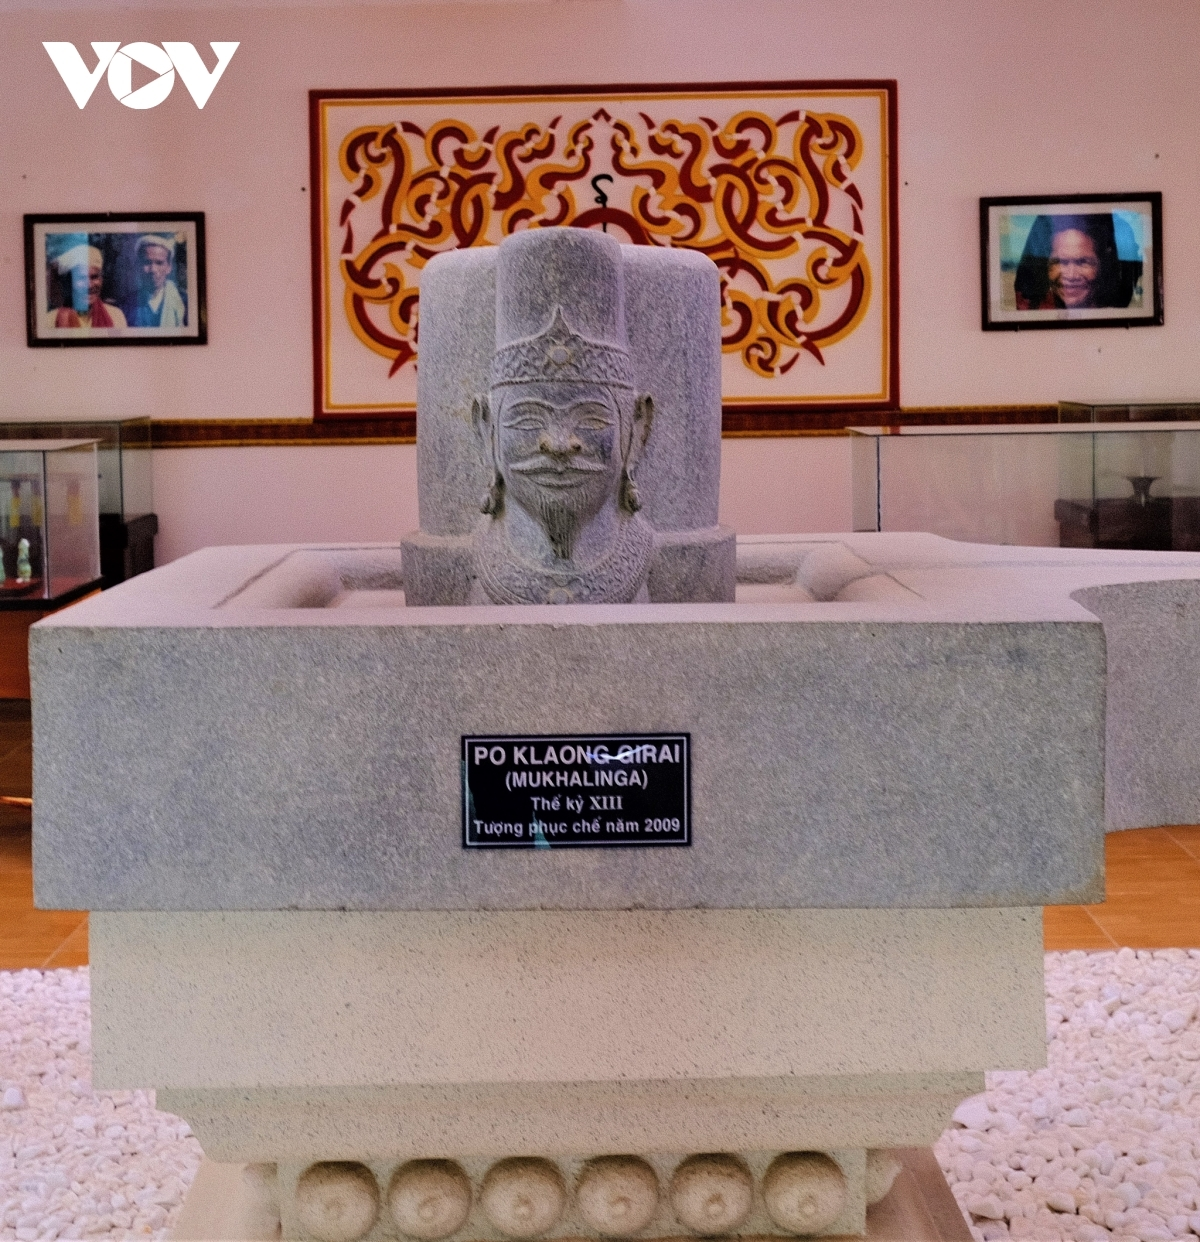 A statue featuring King Po Klaong Girai can be viewed at a museum showcasing Champa culture.